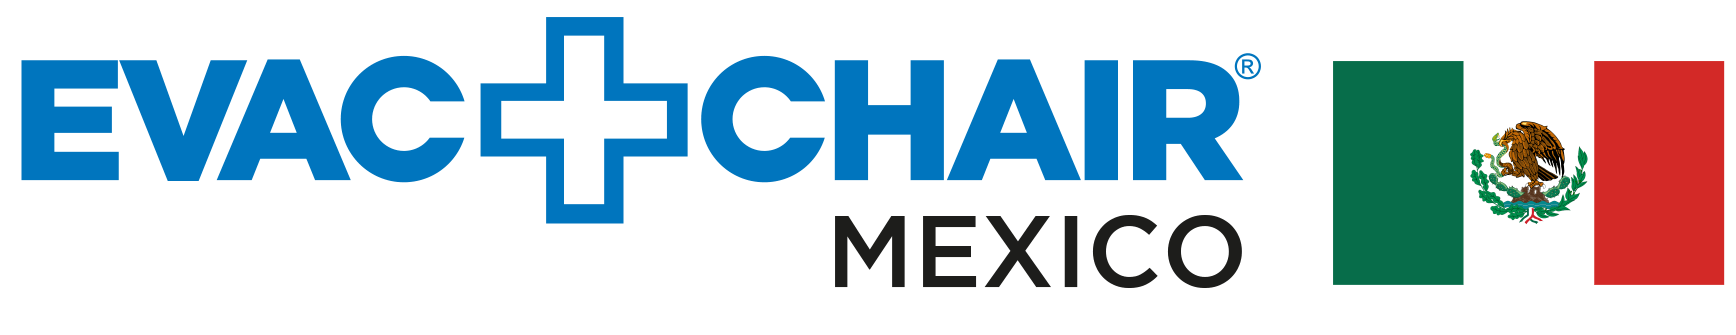 Evac+Chair Mexico Logo